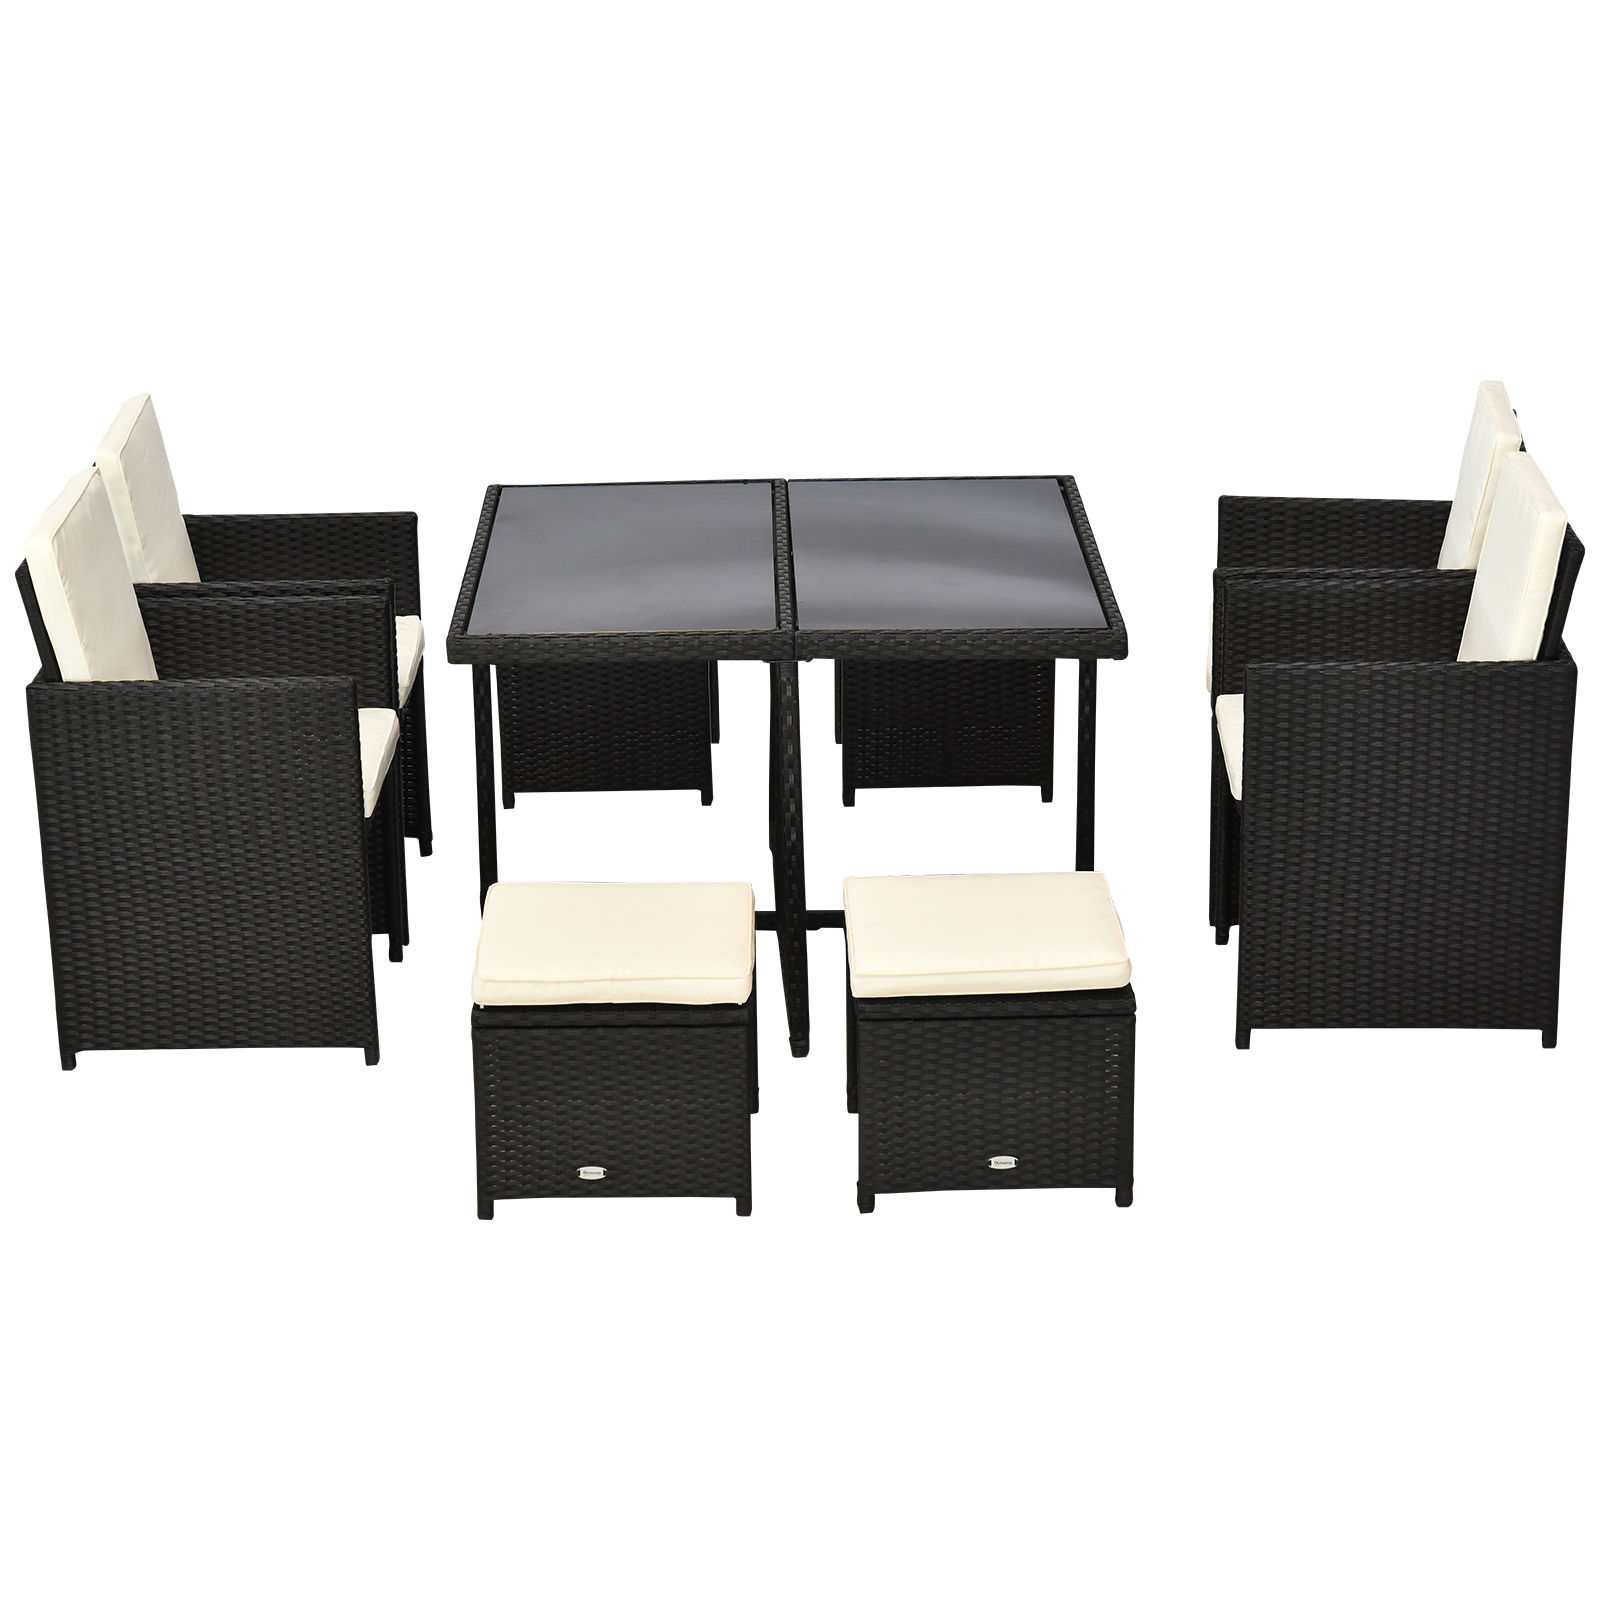 Outsunny 9 pc Outdoor Rattan Wicker Dining